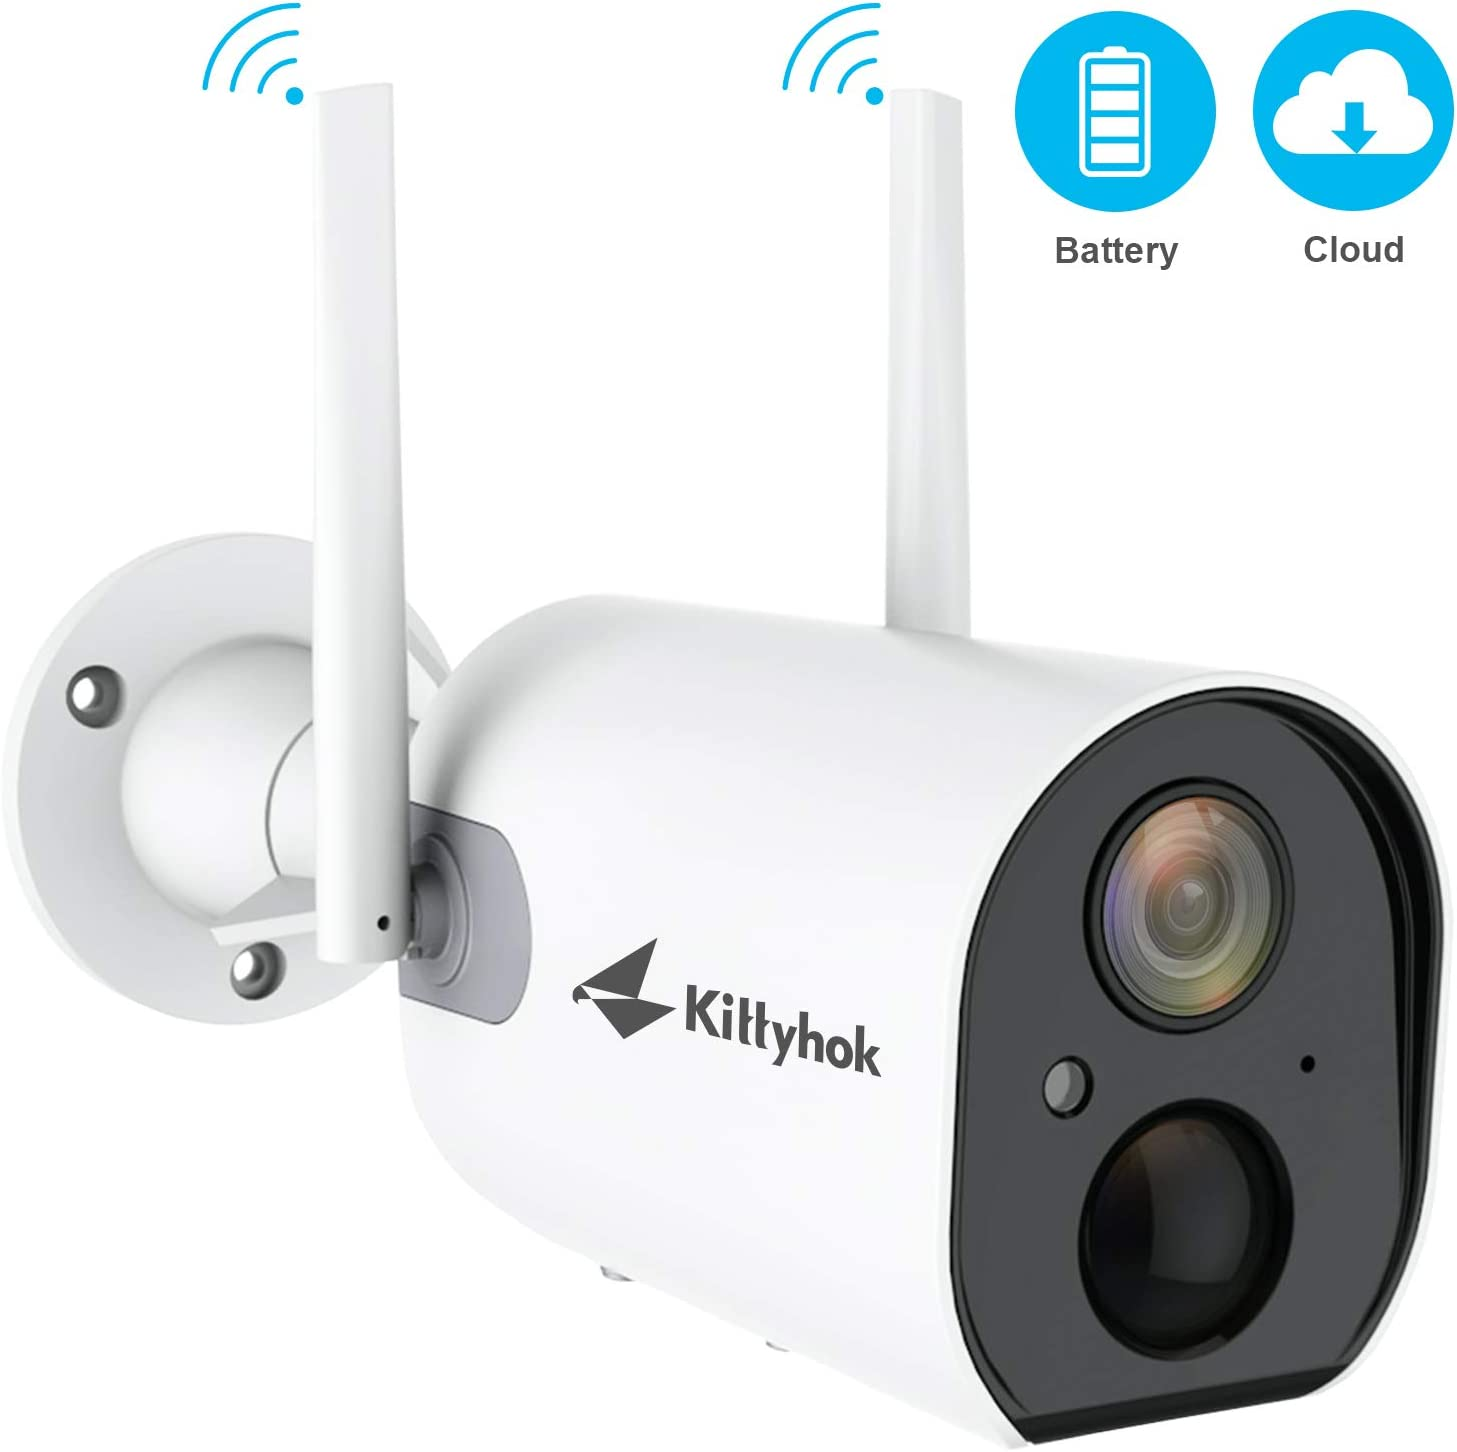 Kittyhok Wire-Free Outdoor Battery Powered Security Cameras Wireless, 1080P WiFi IP Security Home Camera with PIR Detection, 2-Way Audio, FHD Night Vision, IP65 Weatherproof, Micro SD/Cloud Storage